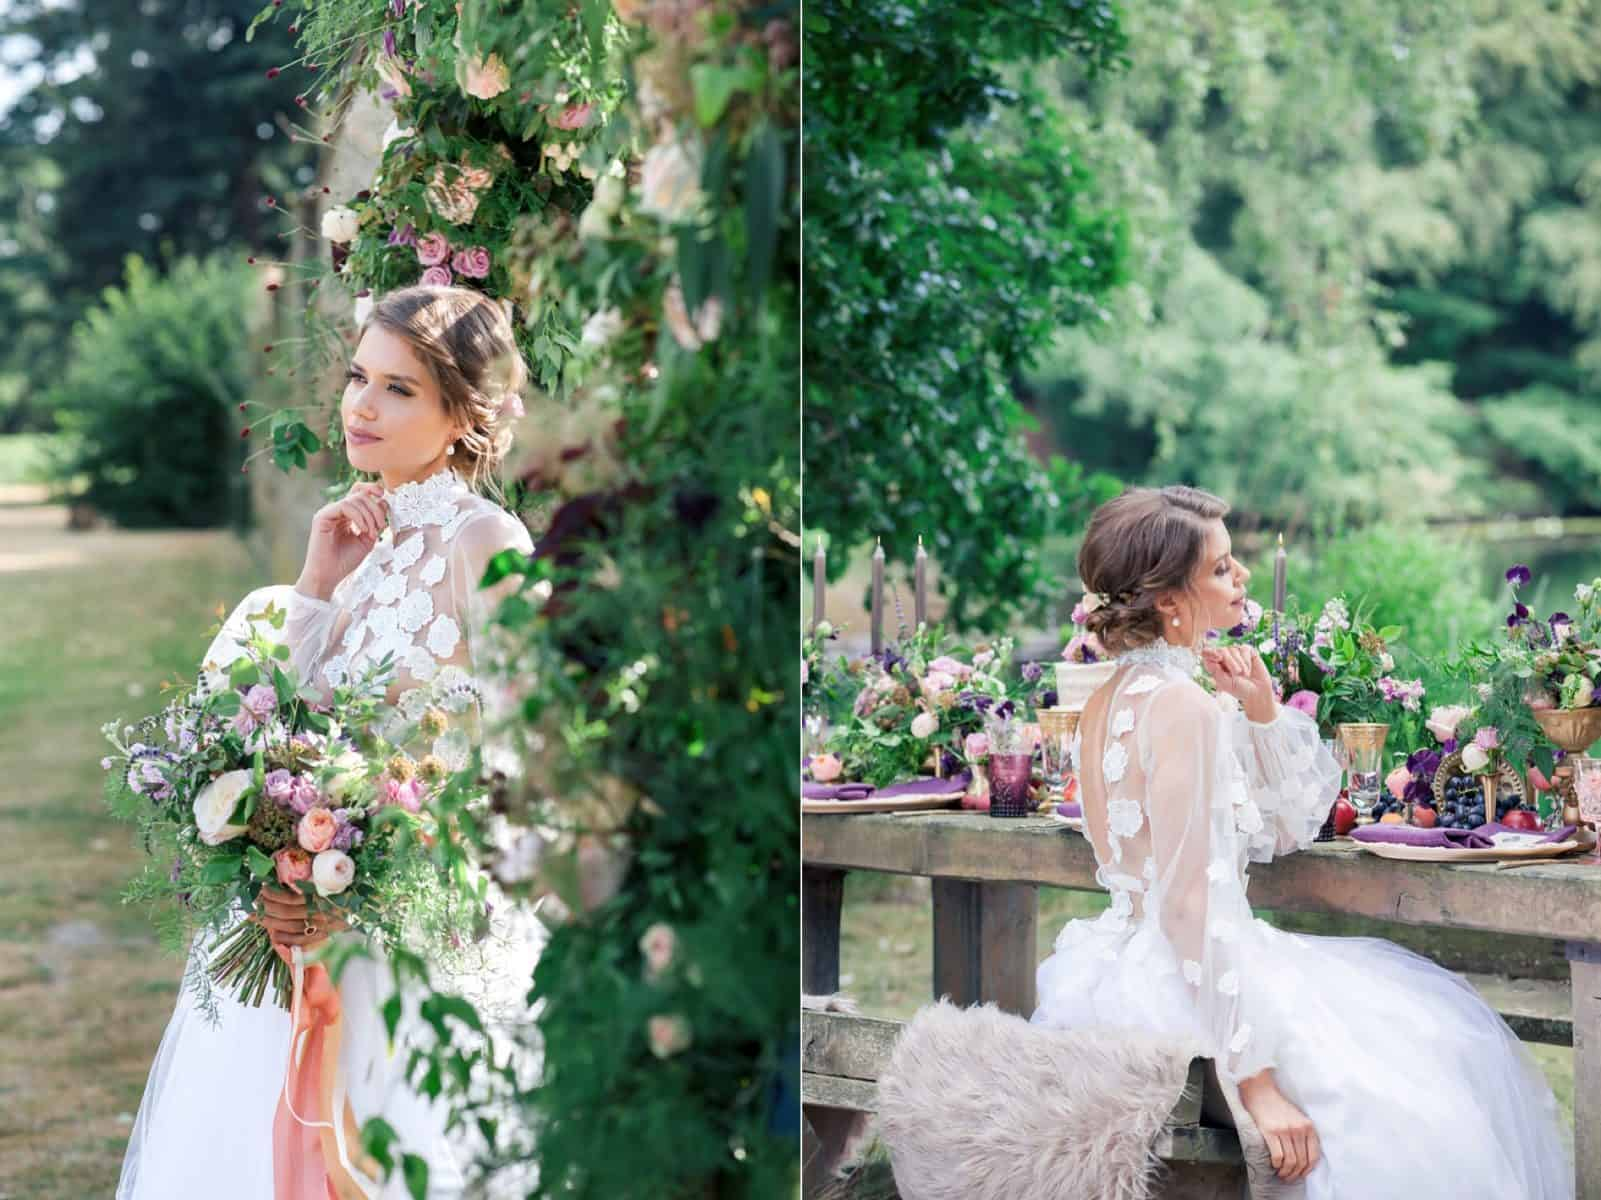 Bridal model wears Kate Edmondson Bridal bespoke dress and carries flowers by Ivy Amelia Florals